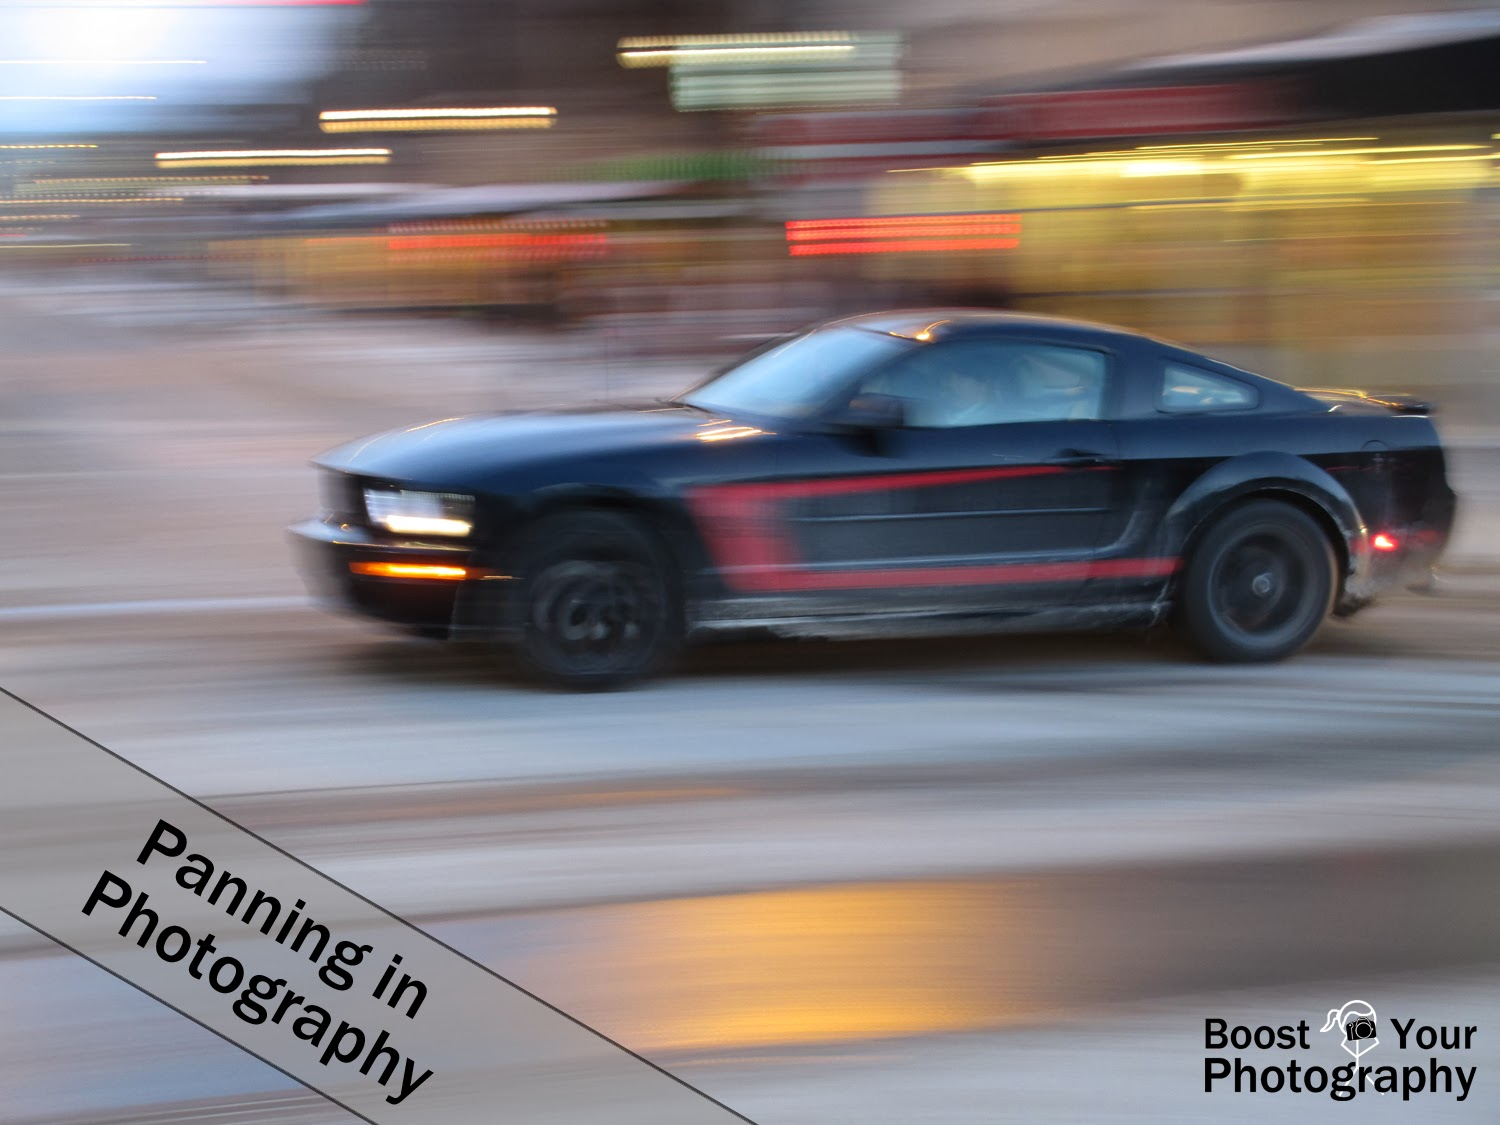 Panning in Photography   Boost Your Photography, panning, photography, motion, blur, ICM, intentional camera movement